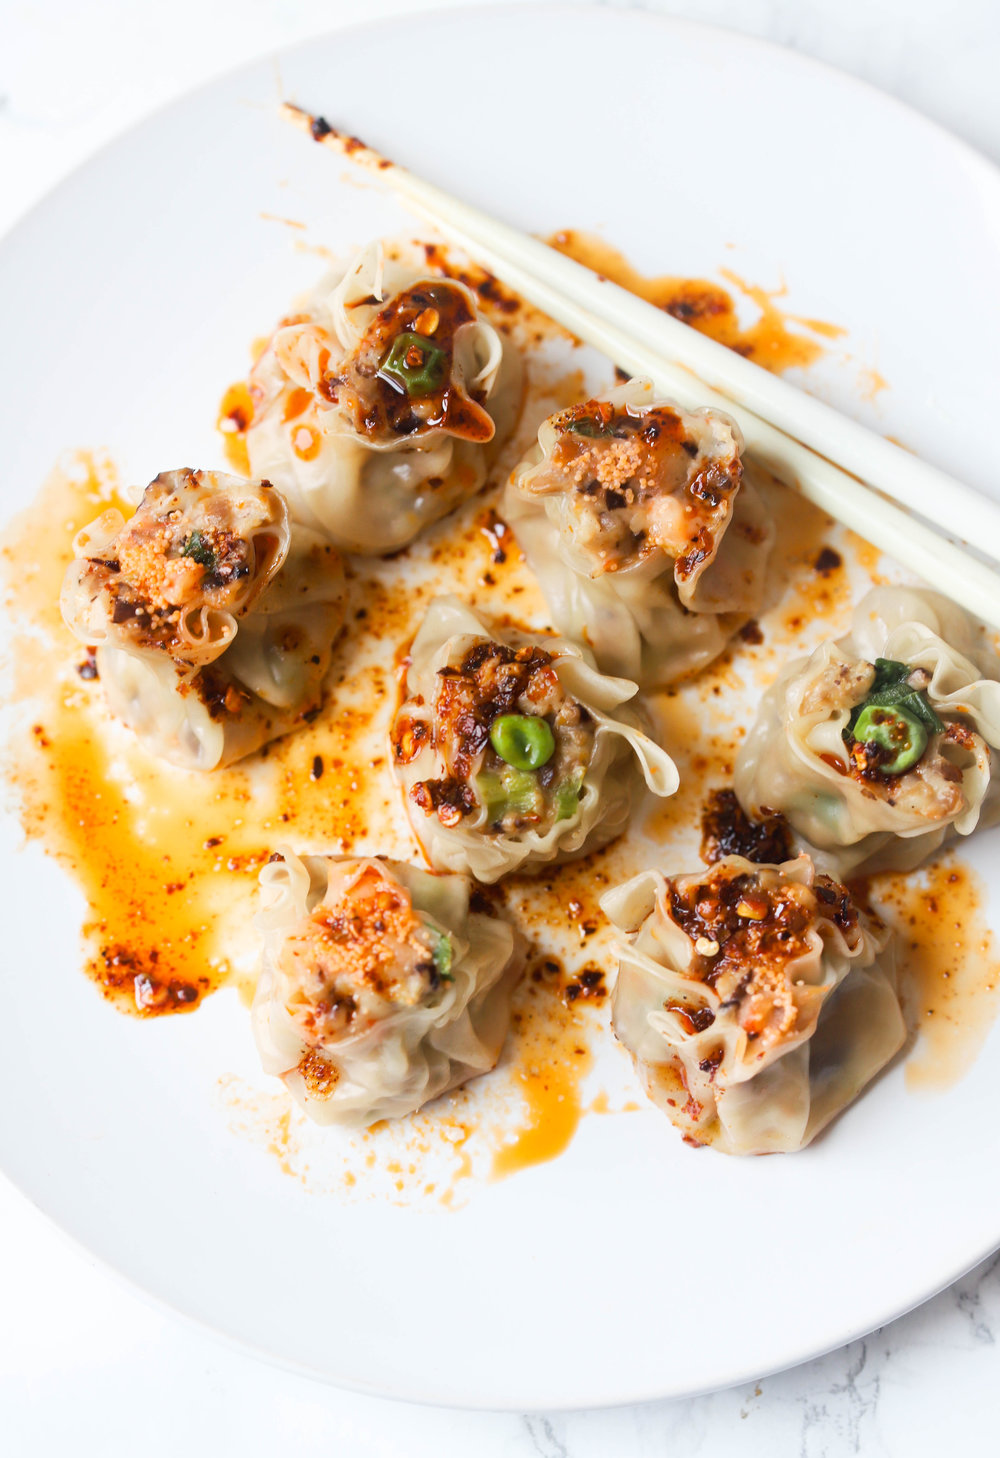 Shrimp and Mushroom Shumai